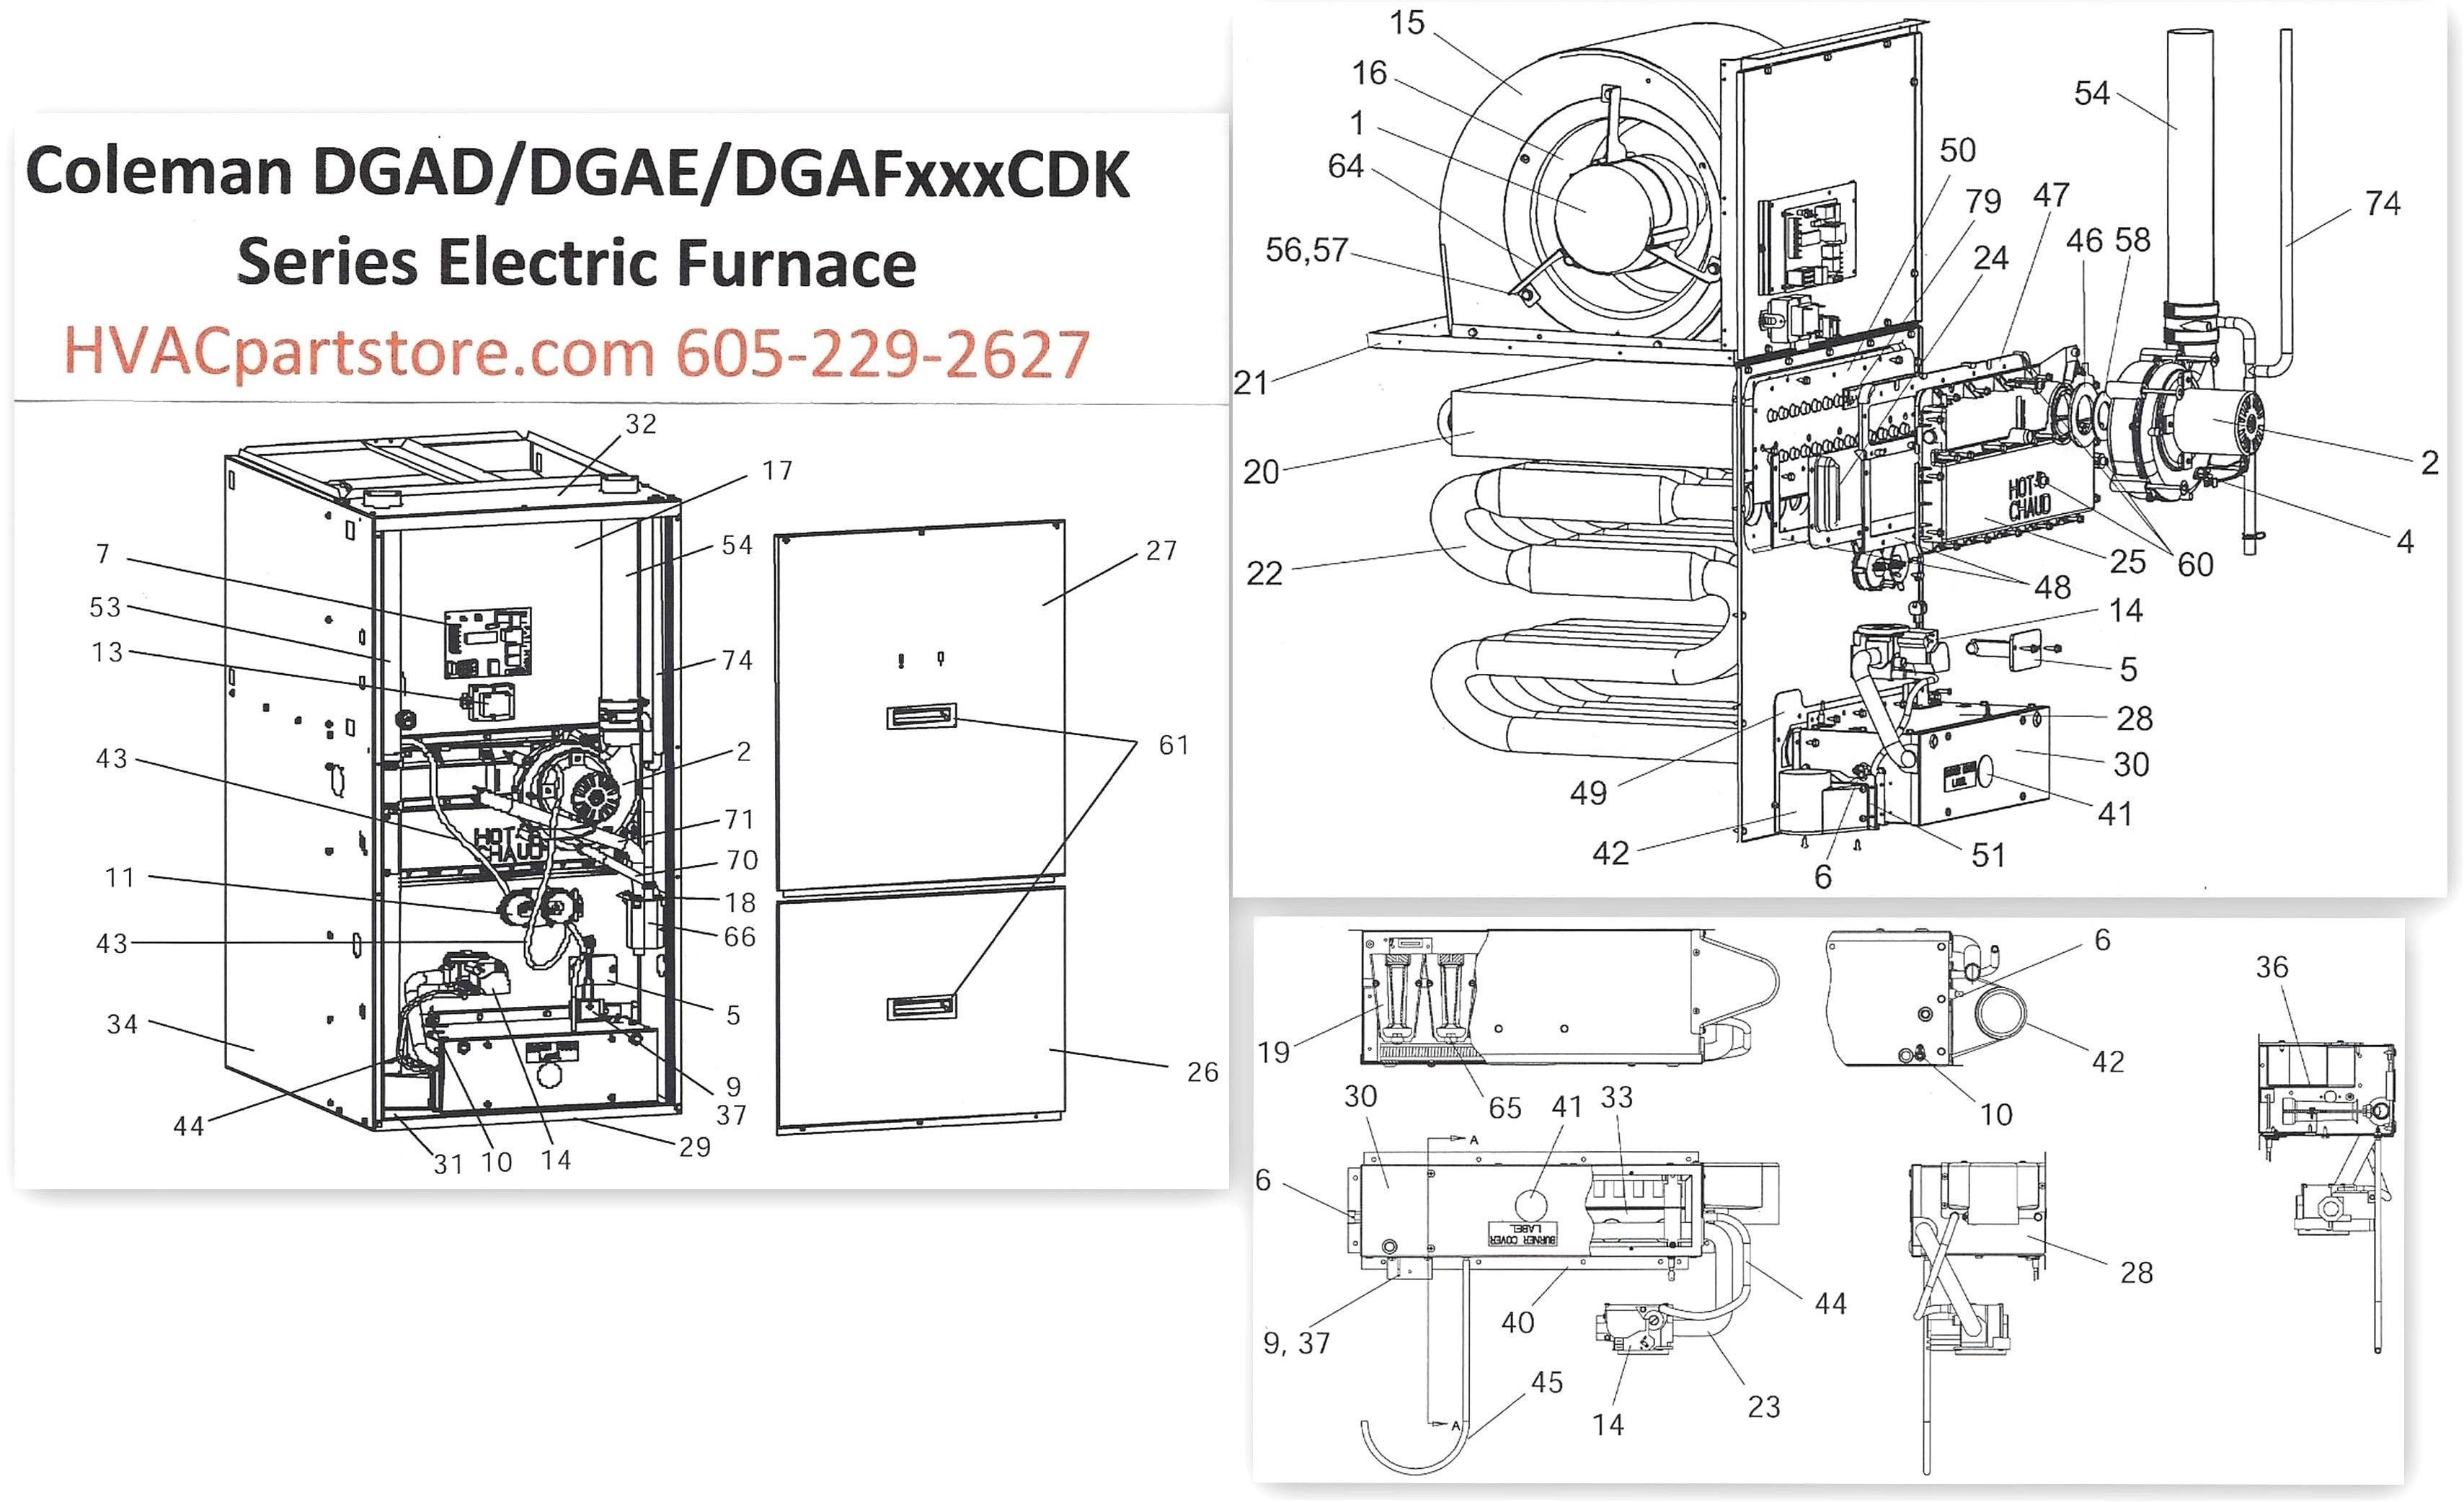 New Wiring Diagram For An Electric Furnace Electric Furnace Furnace Diagram